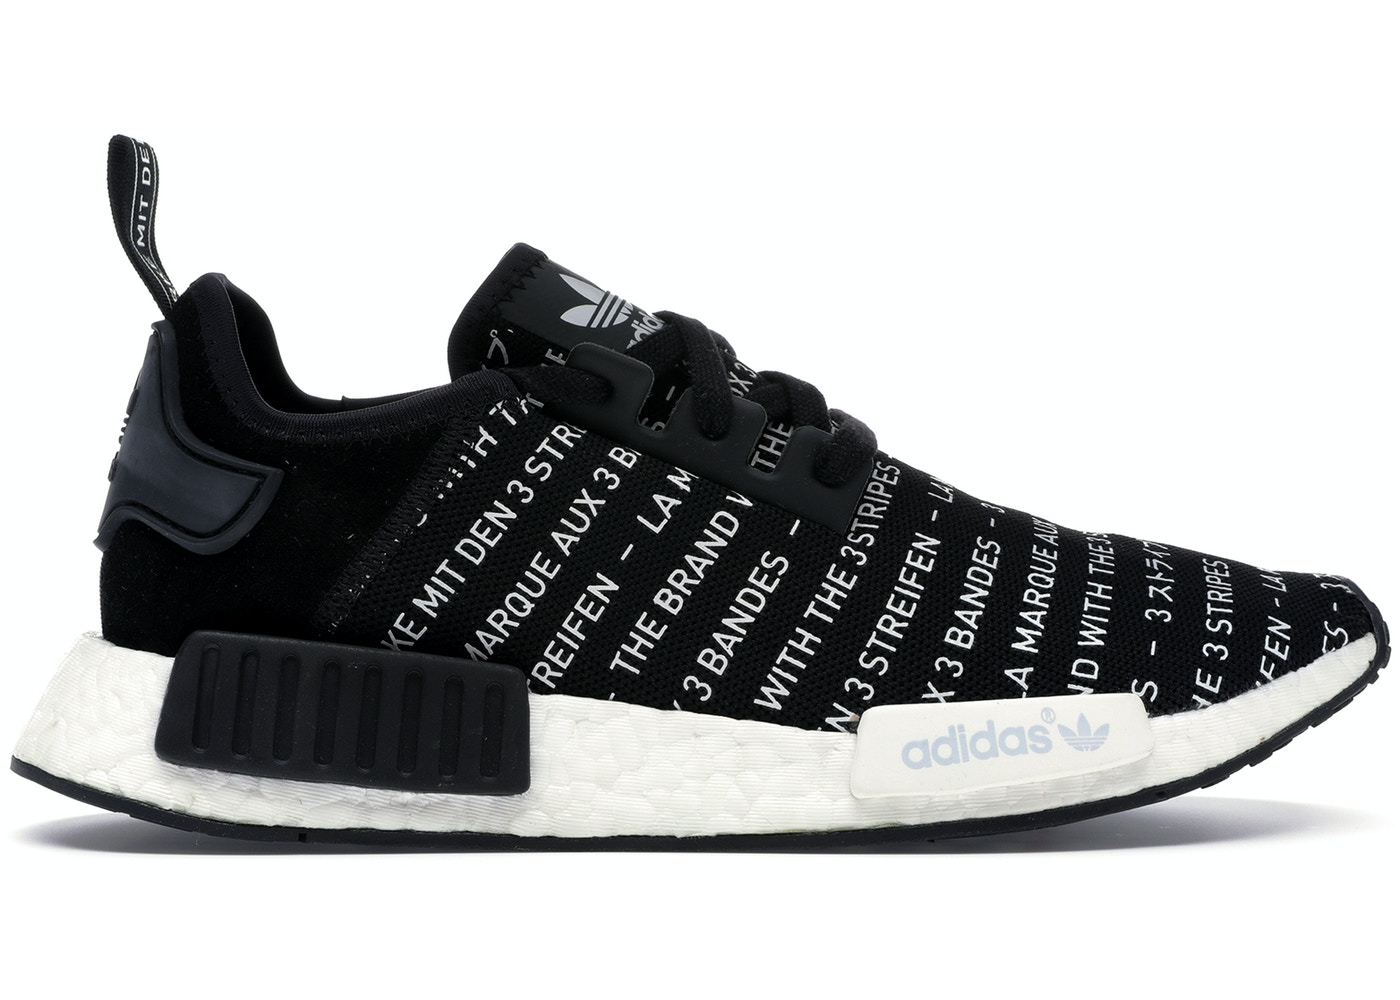 af9e52d3e1a06 Buy adidas NMD R1 Shoes   Deadstock Sneakers